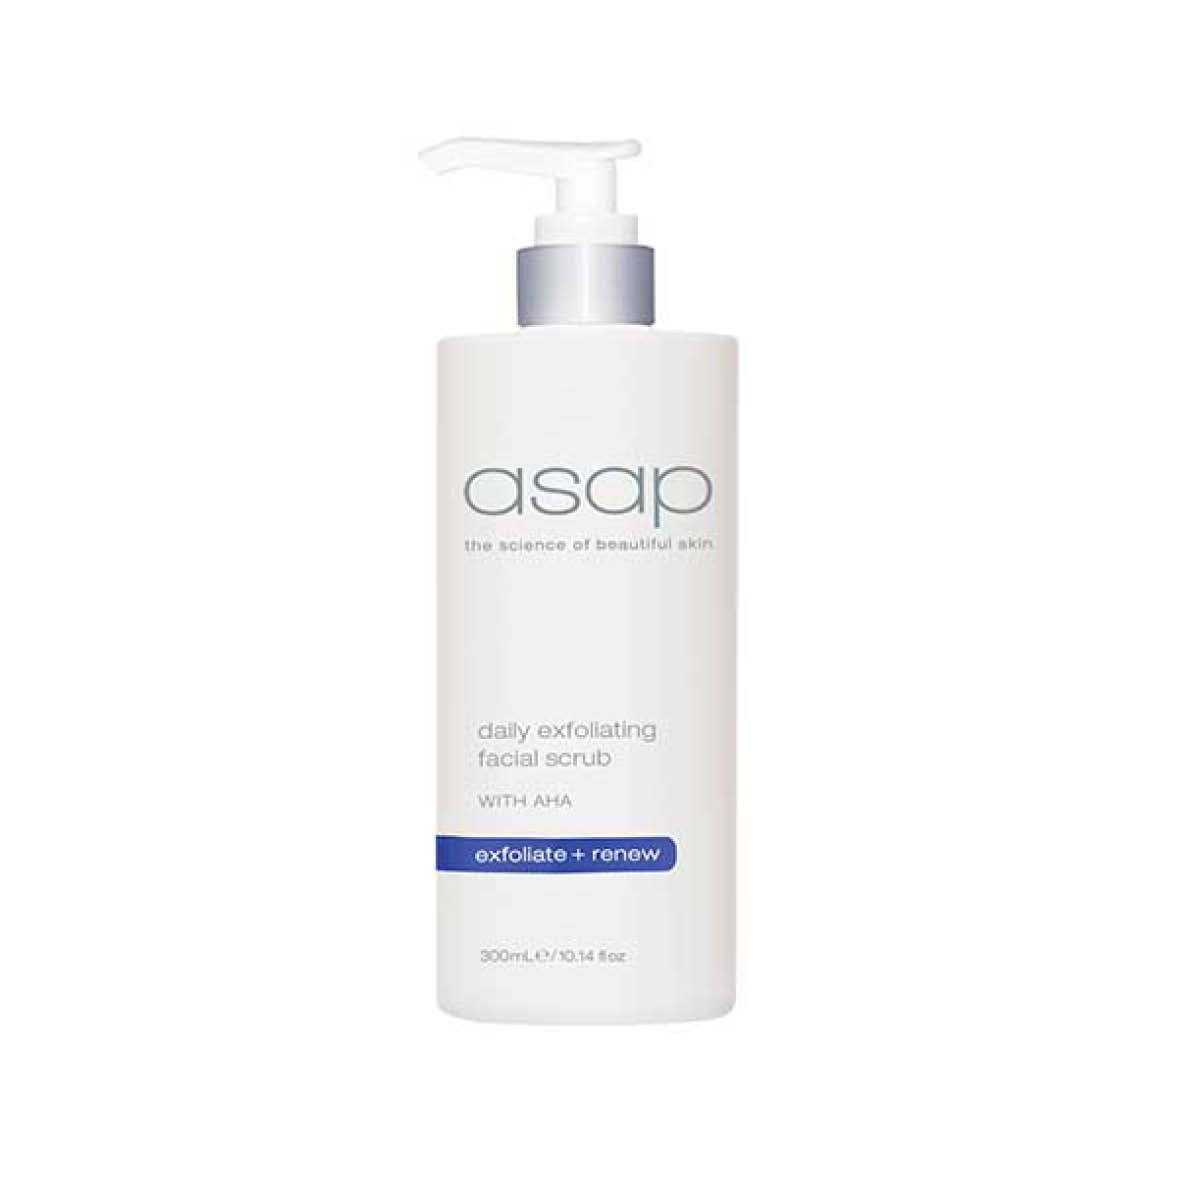 ASAP Daily Exfoliating Facial Scrub 300ml